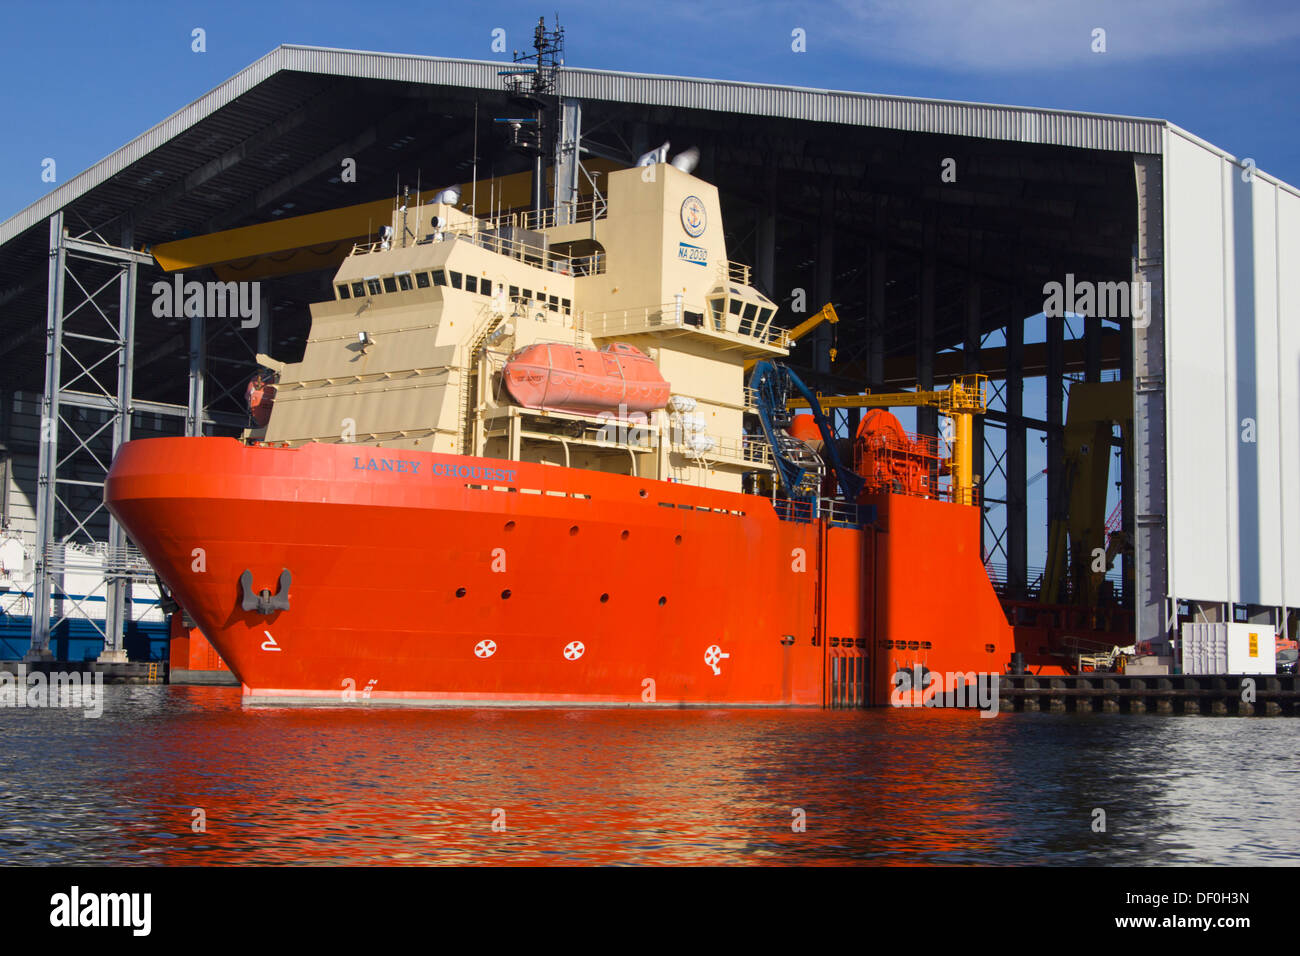 Edison Chouest Offshore (ECO)  vessel at Port Fourchon. Laney Chouest multi-purpose supply vessel used for deepwater Stock Photo